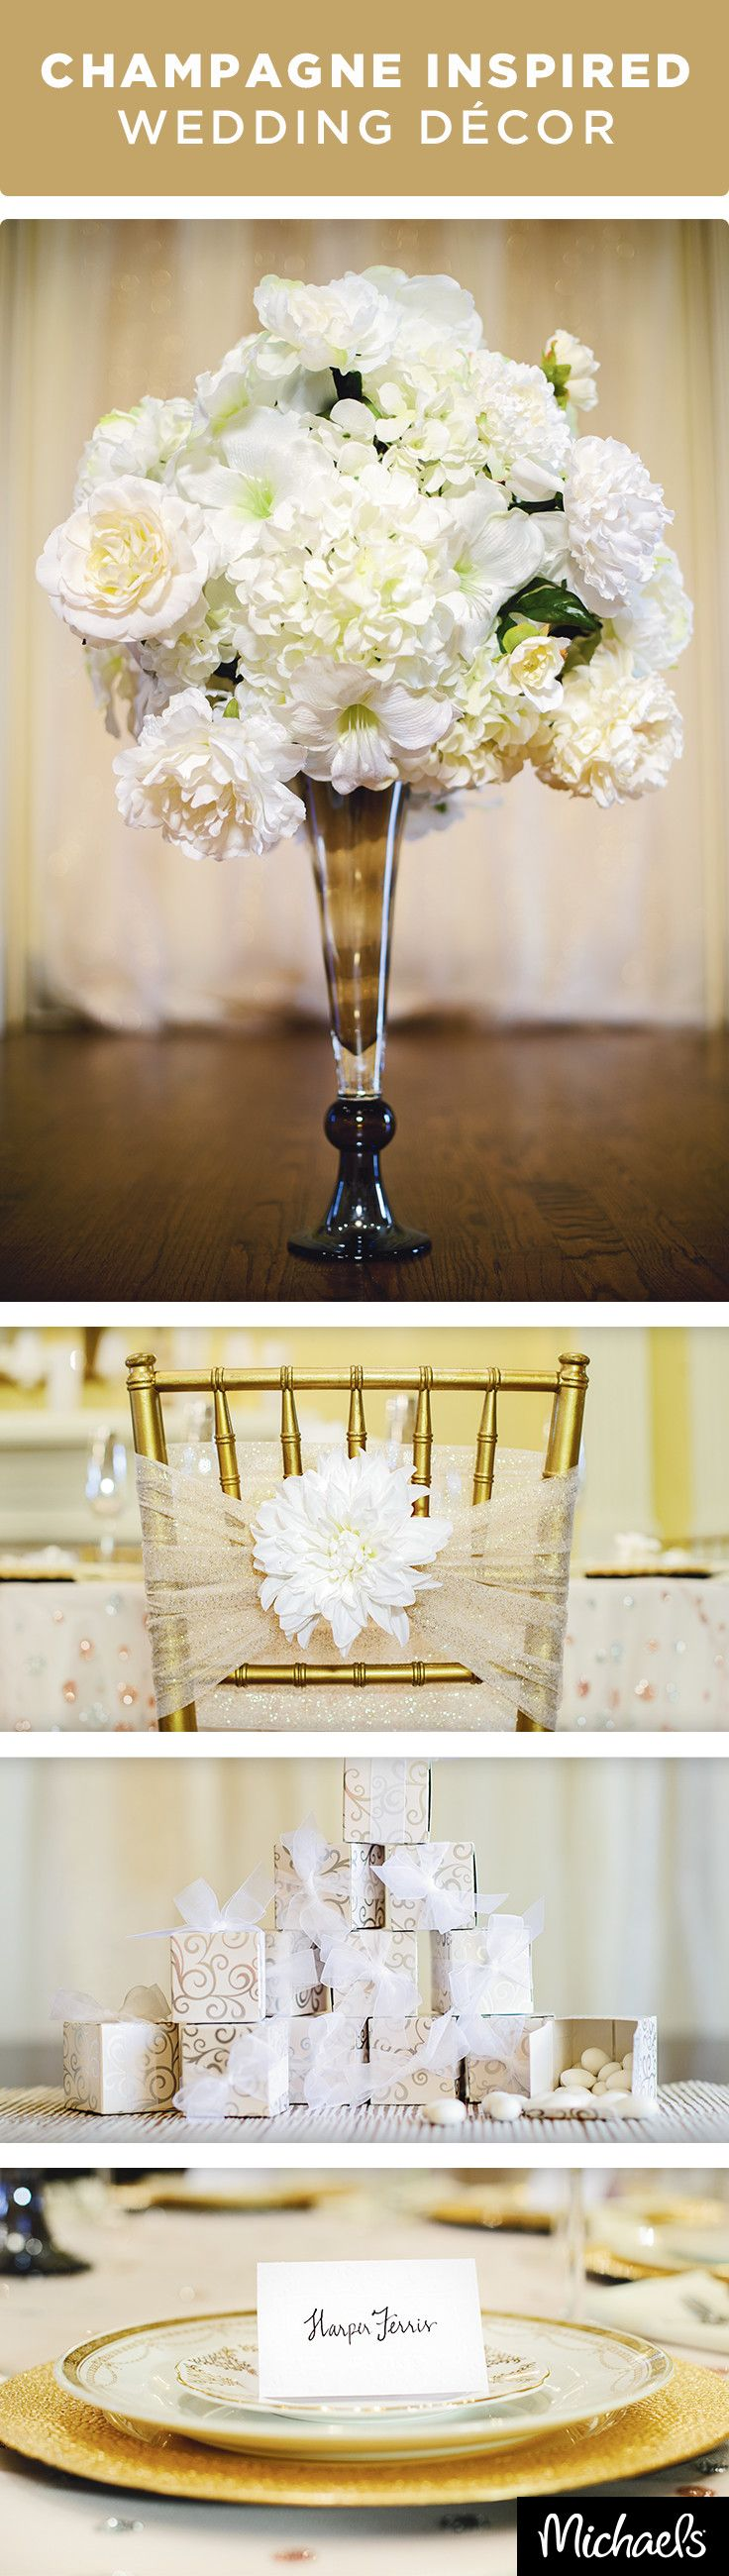 Future weddings on pinterest the flowers wedding and purple ombre